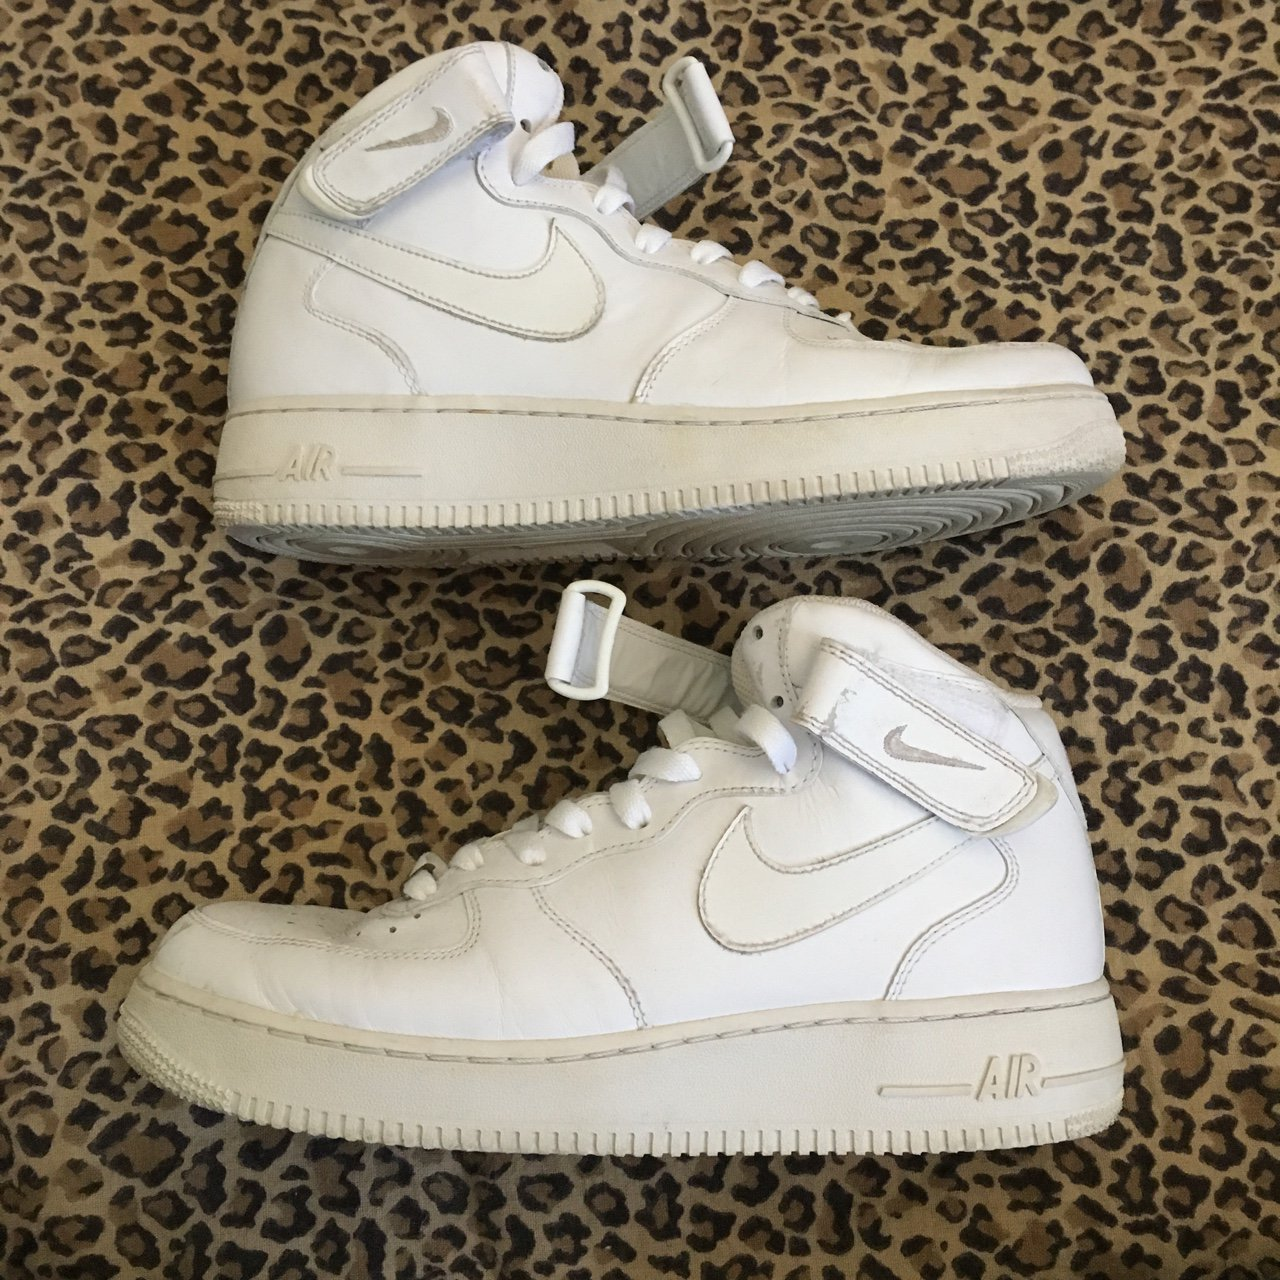 👣 Nike White Air Force 1 High-tops in Size Women s 10 or 9 - Depop a6275e2e9e